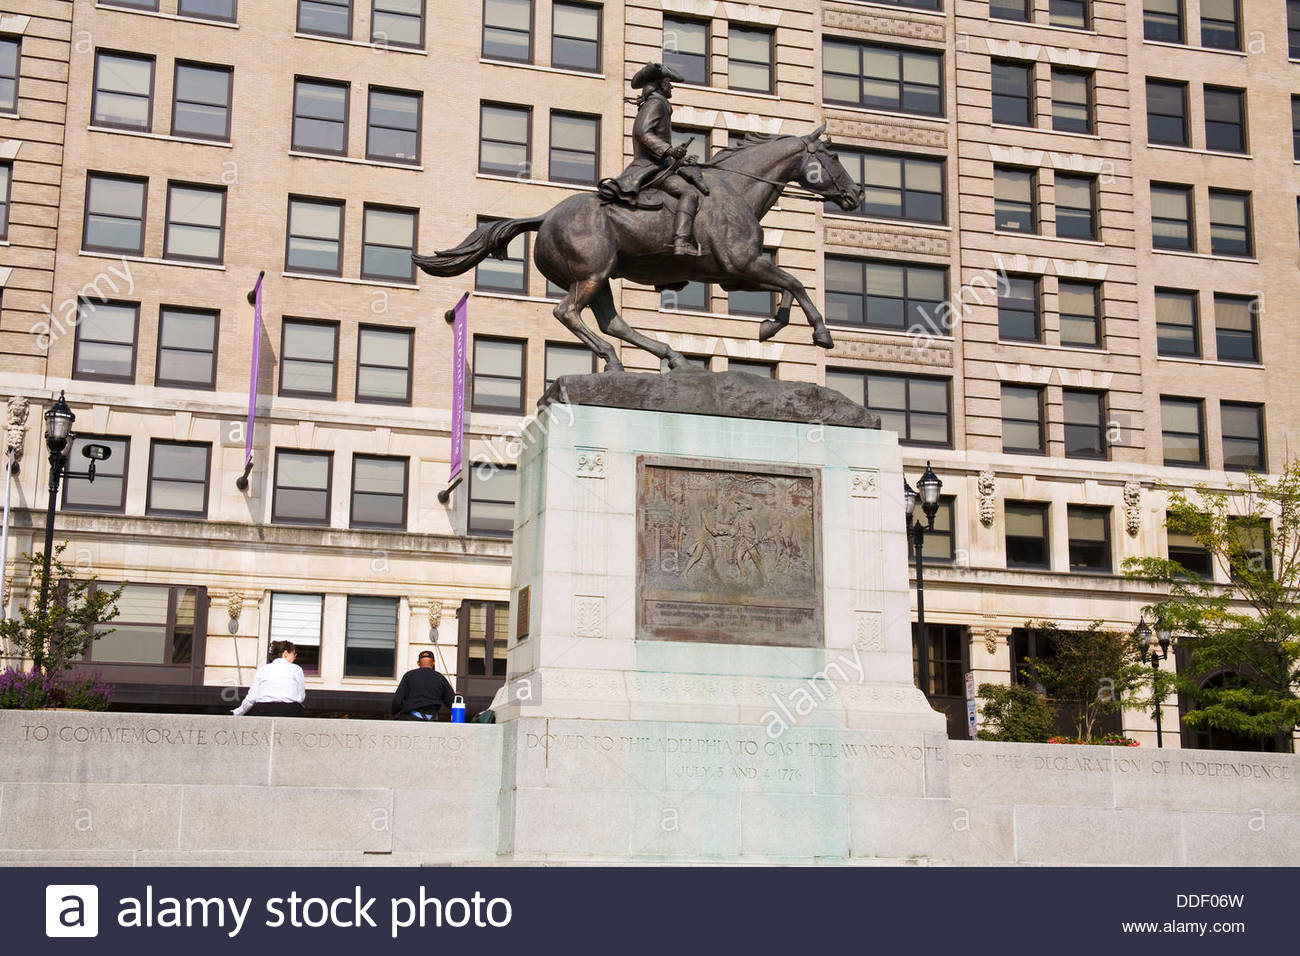 Rodney Square is the public square and national historic district located in downtown Wilmington, New Castle County, Delaware, named after American Revolutionary leader Caesar Rodney.